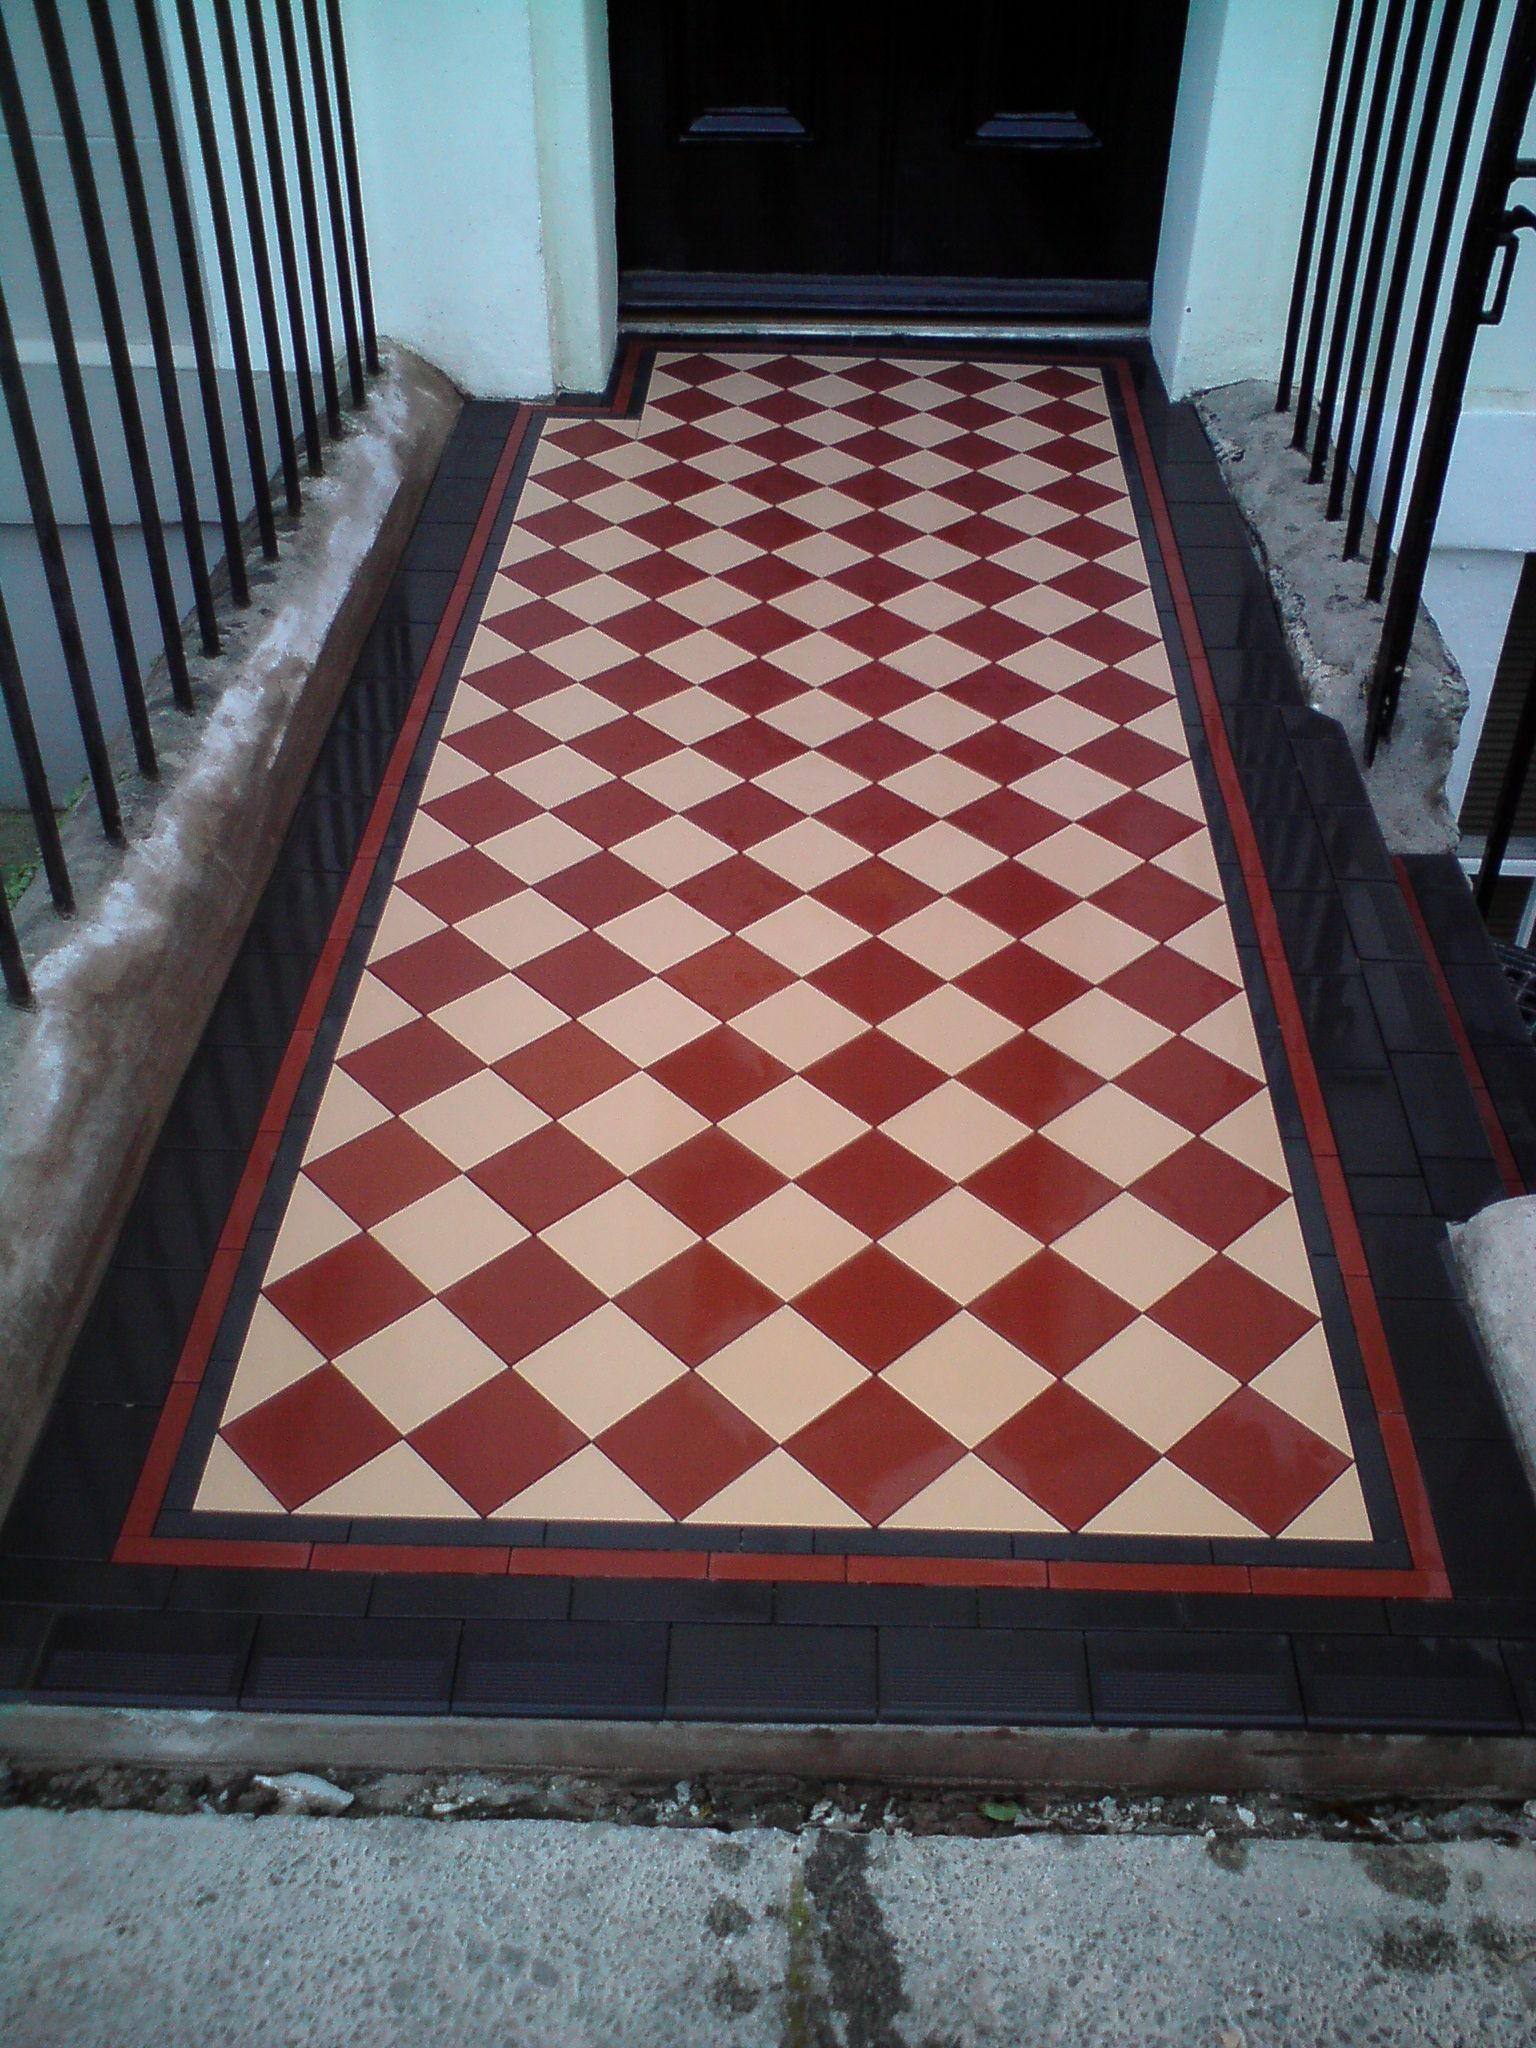 Red white victorian tiled front path tiled by bishopston tiles red white victorian tiled front path tiled by bishopston tiles dailygadgetfo Image collections